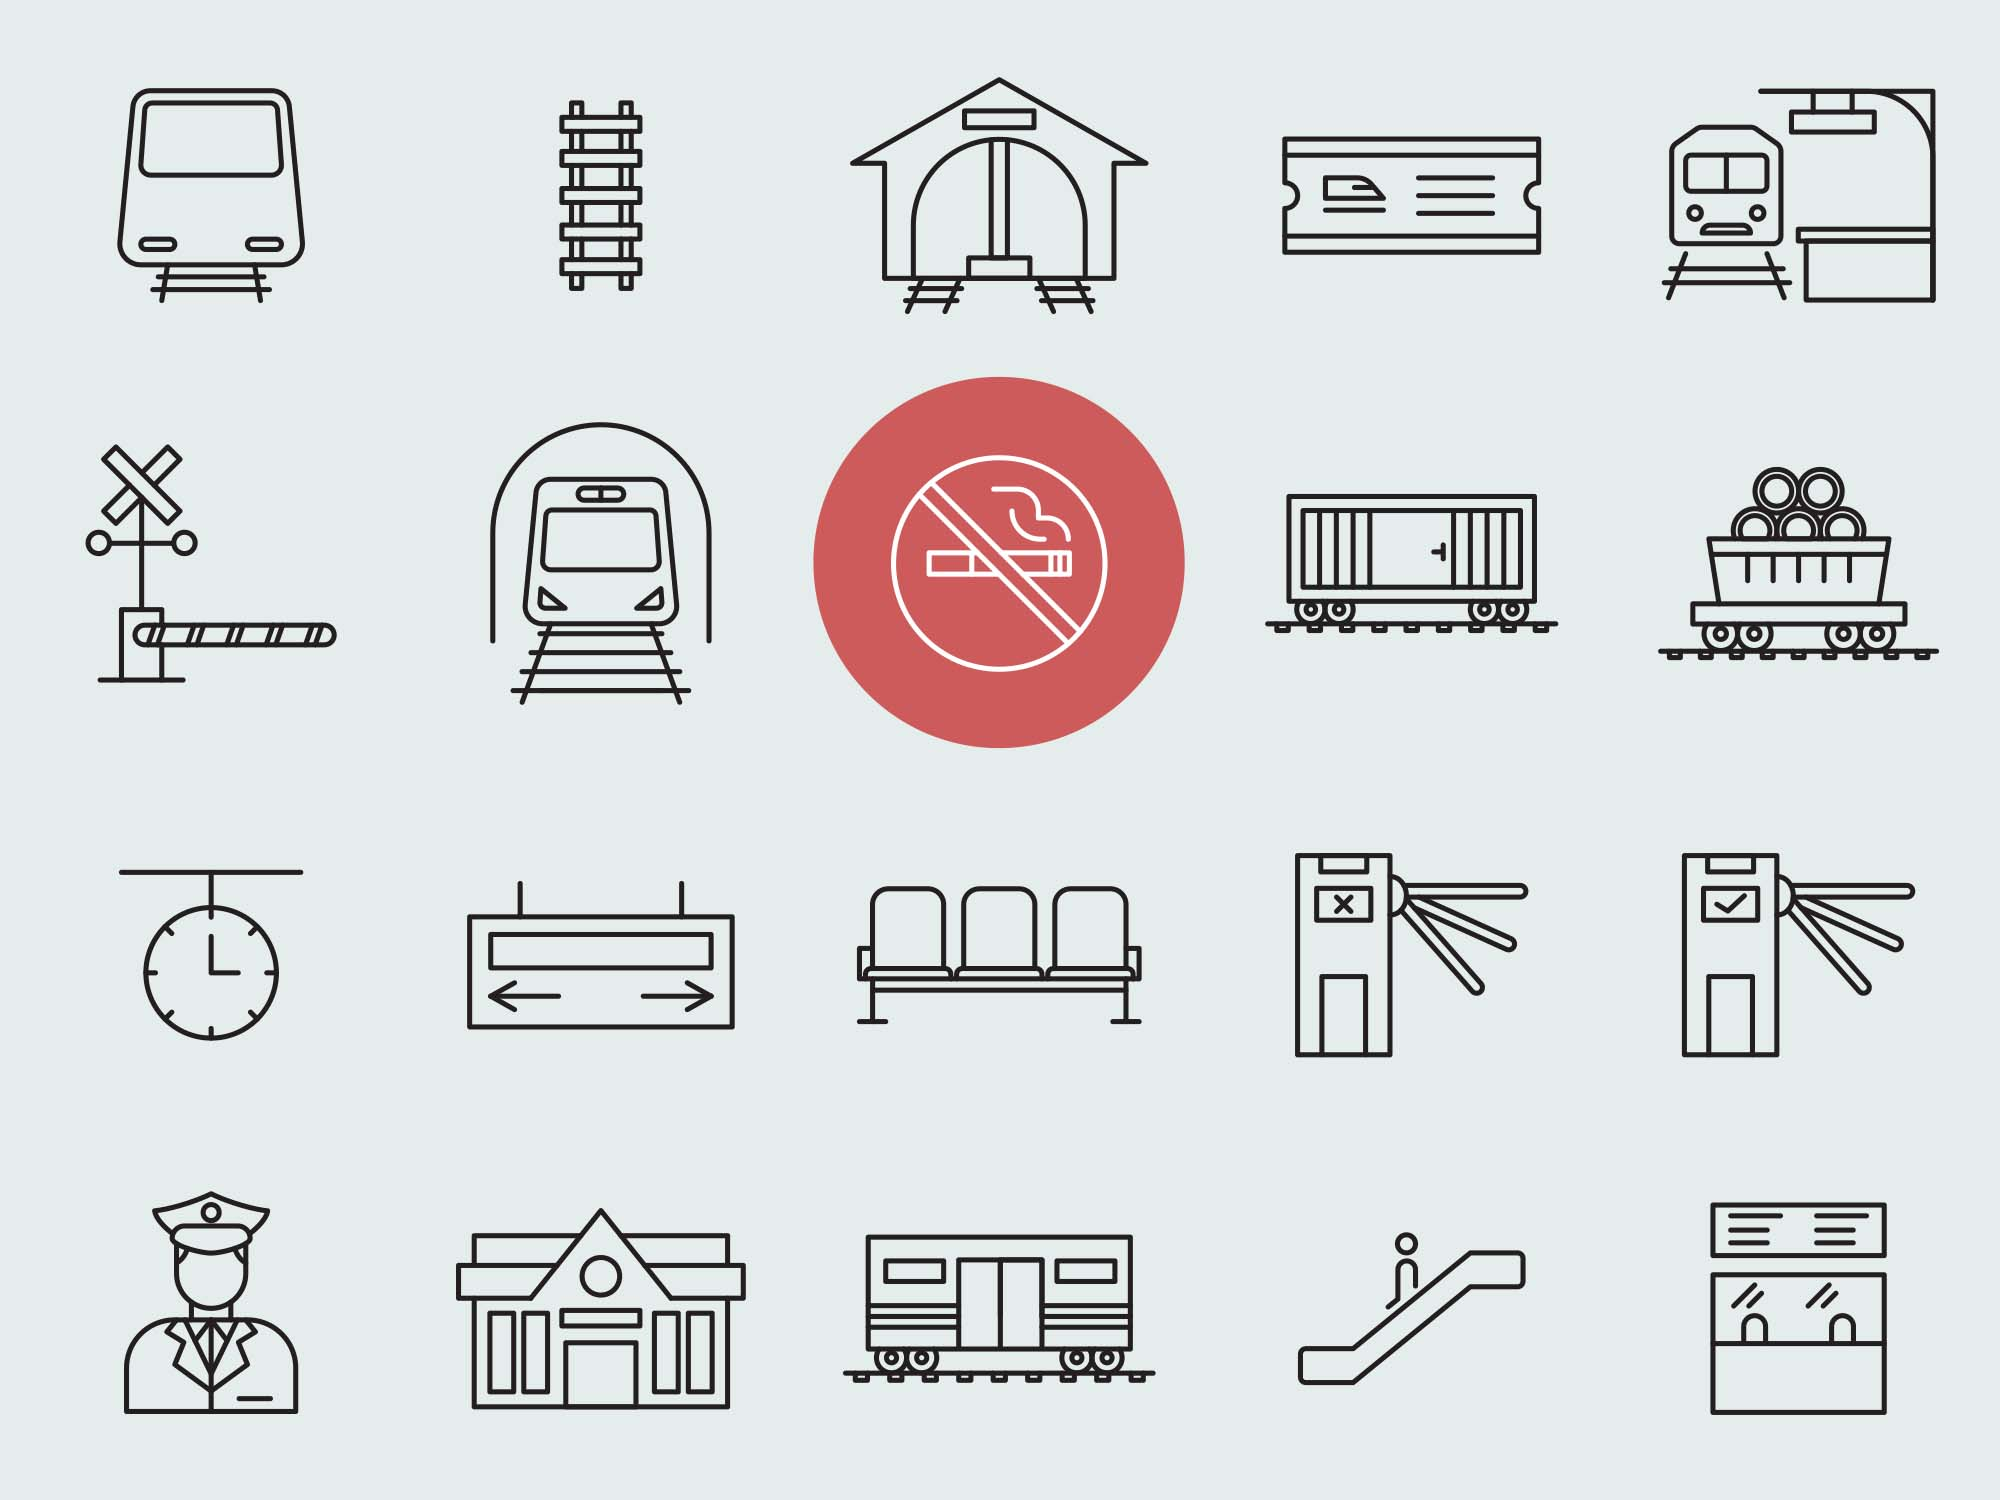 Train Station Vector Icons